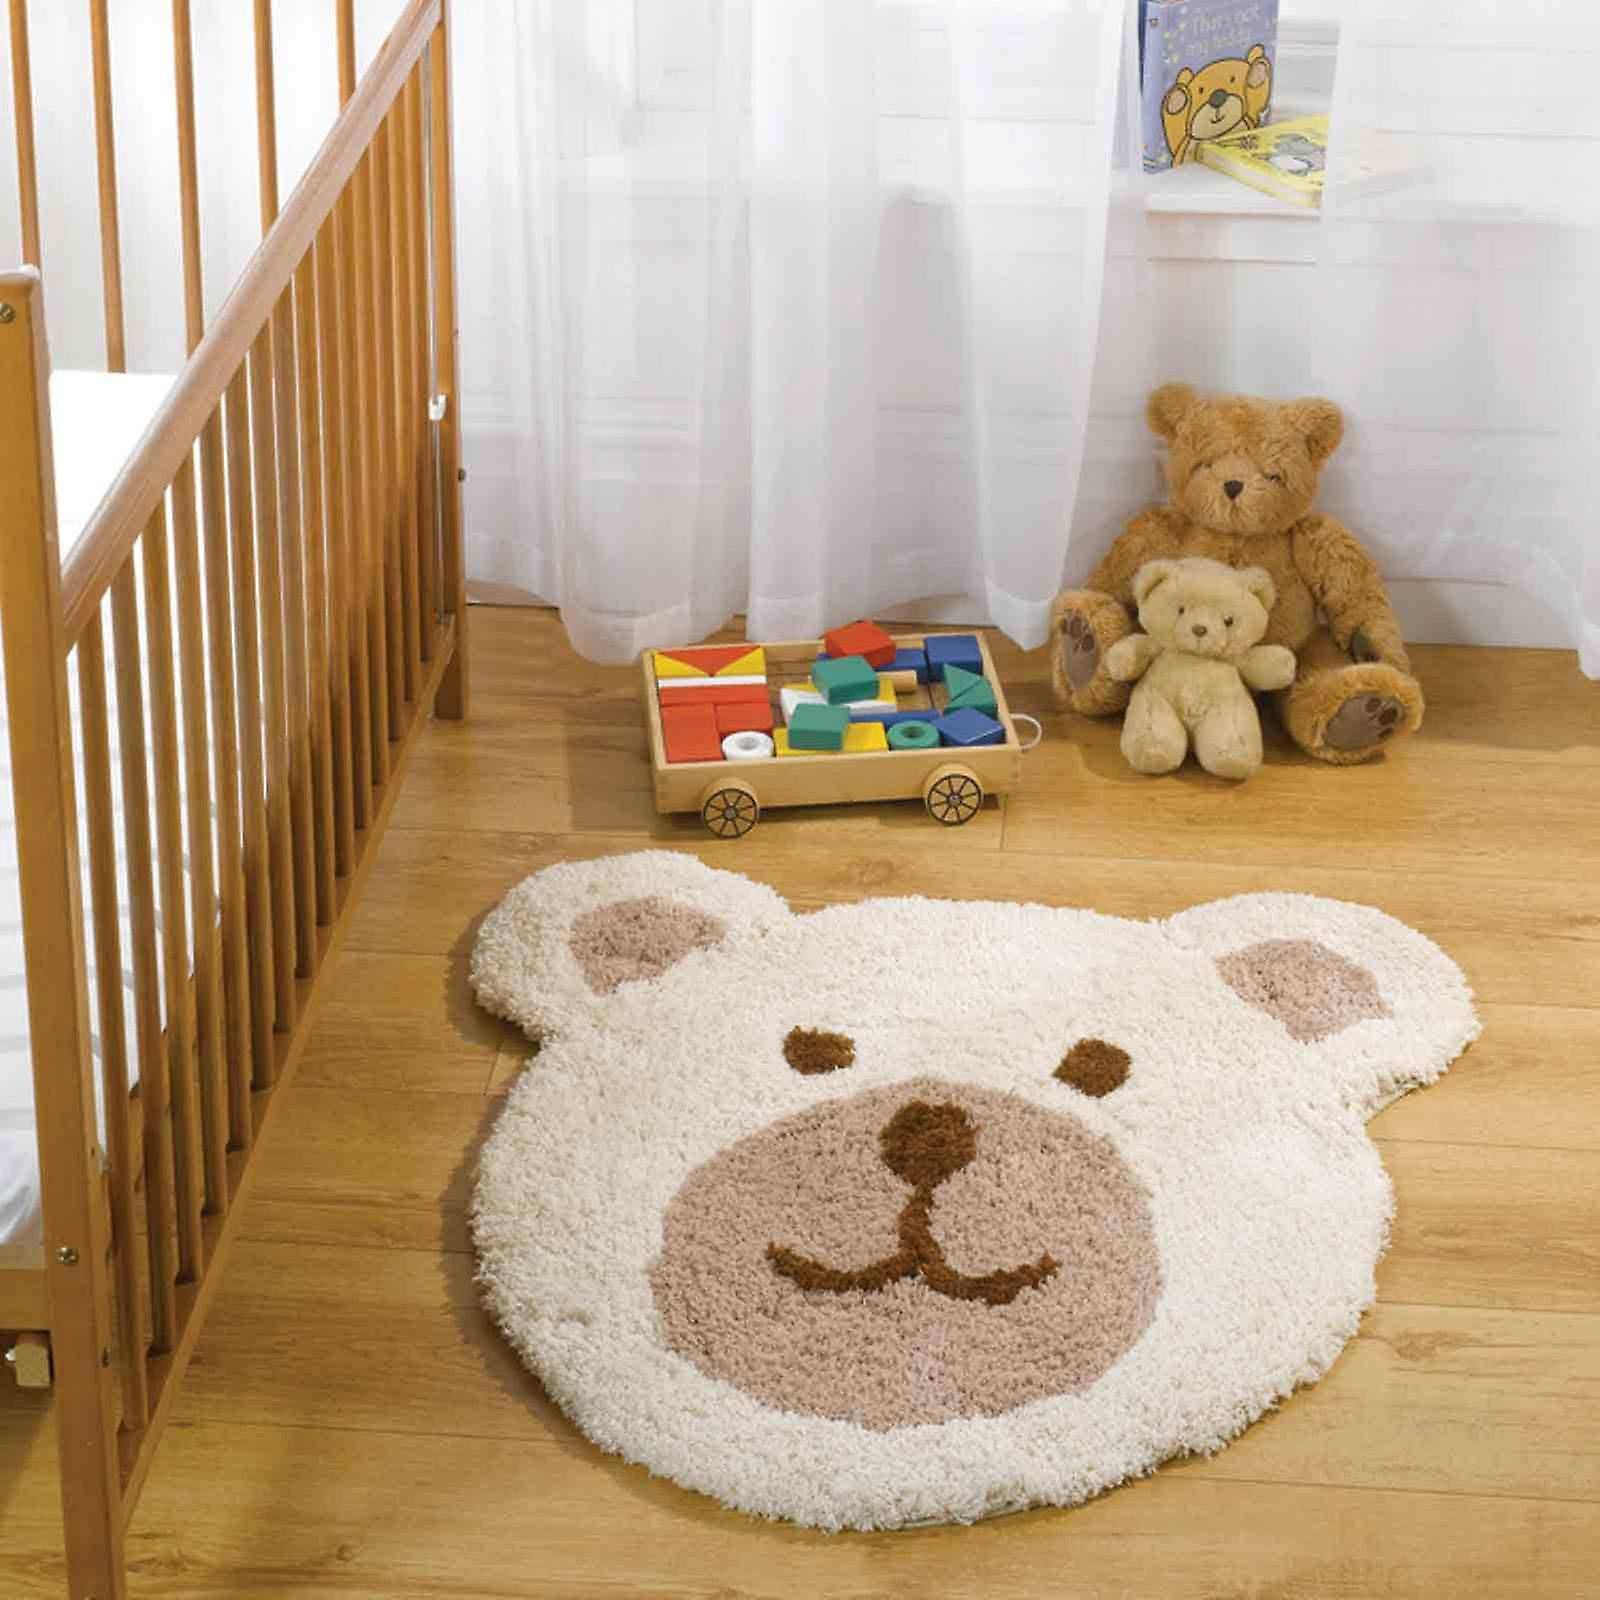 Nursery Teddy Bear Rugs In Natural Fruugo With Teddy Bear Rugs (View 15 of 15)